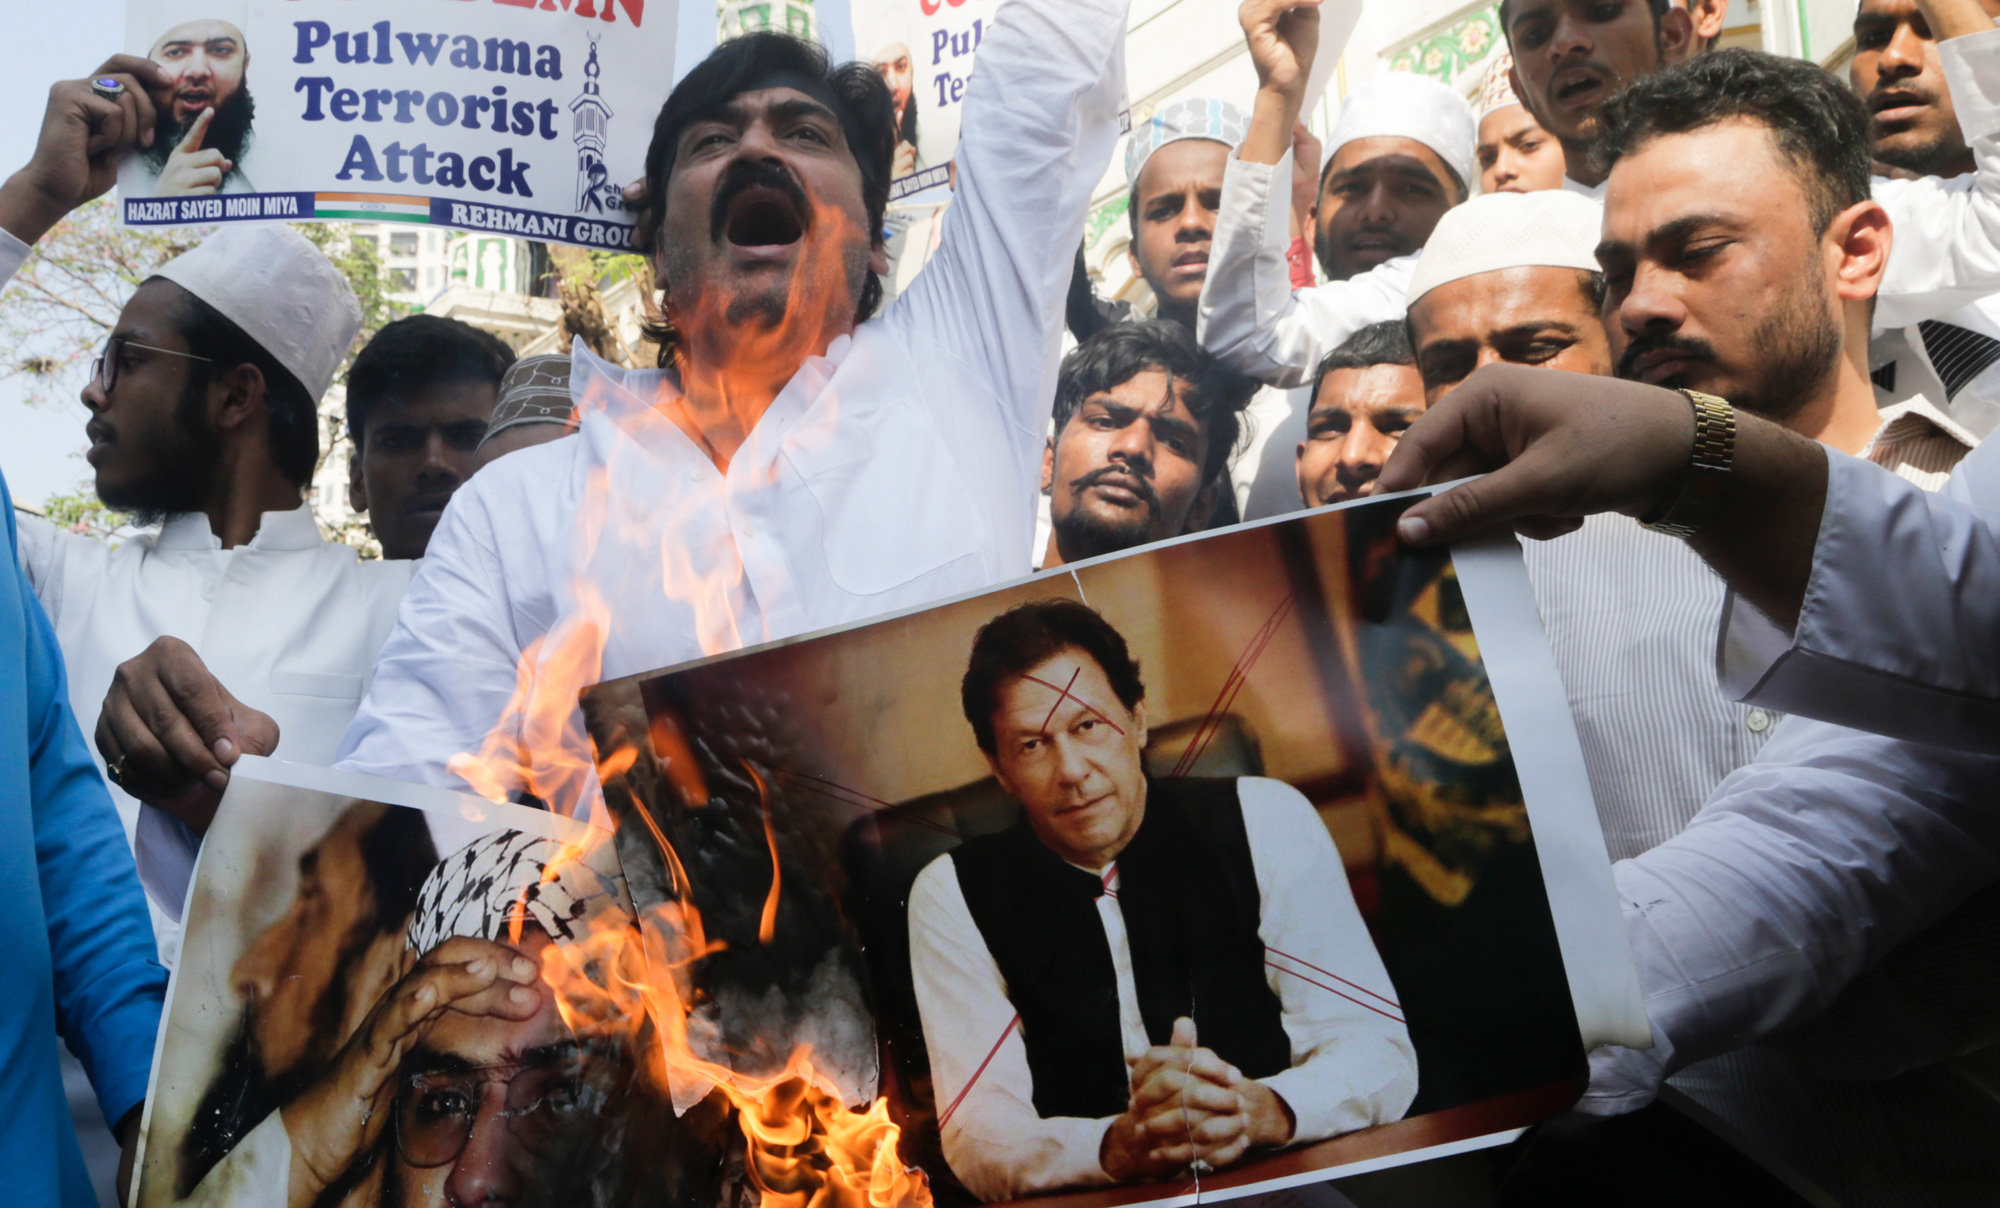 In this Friday, February 15, 2019 file photo, Indian muslims burn posters of Pakistani prime minister Imran Khan (center) and Jaish-e-Mohammed leader Masood Azhar, during a protest against Thursday's attack on a paramilitary convoy in Kashmir, in Mumbai, India.